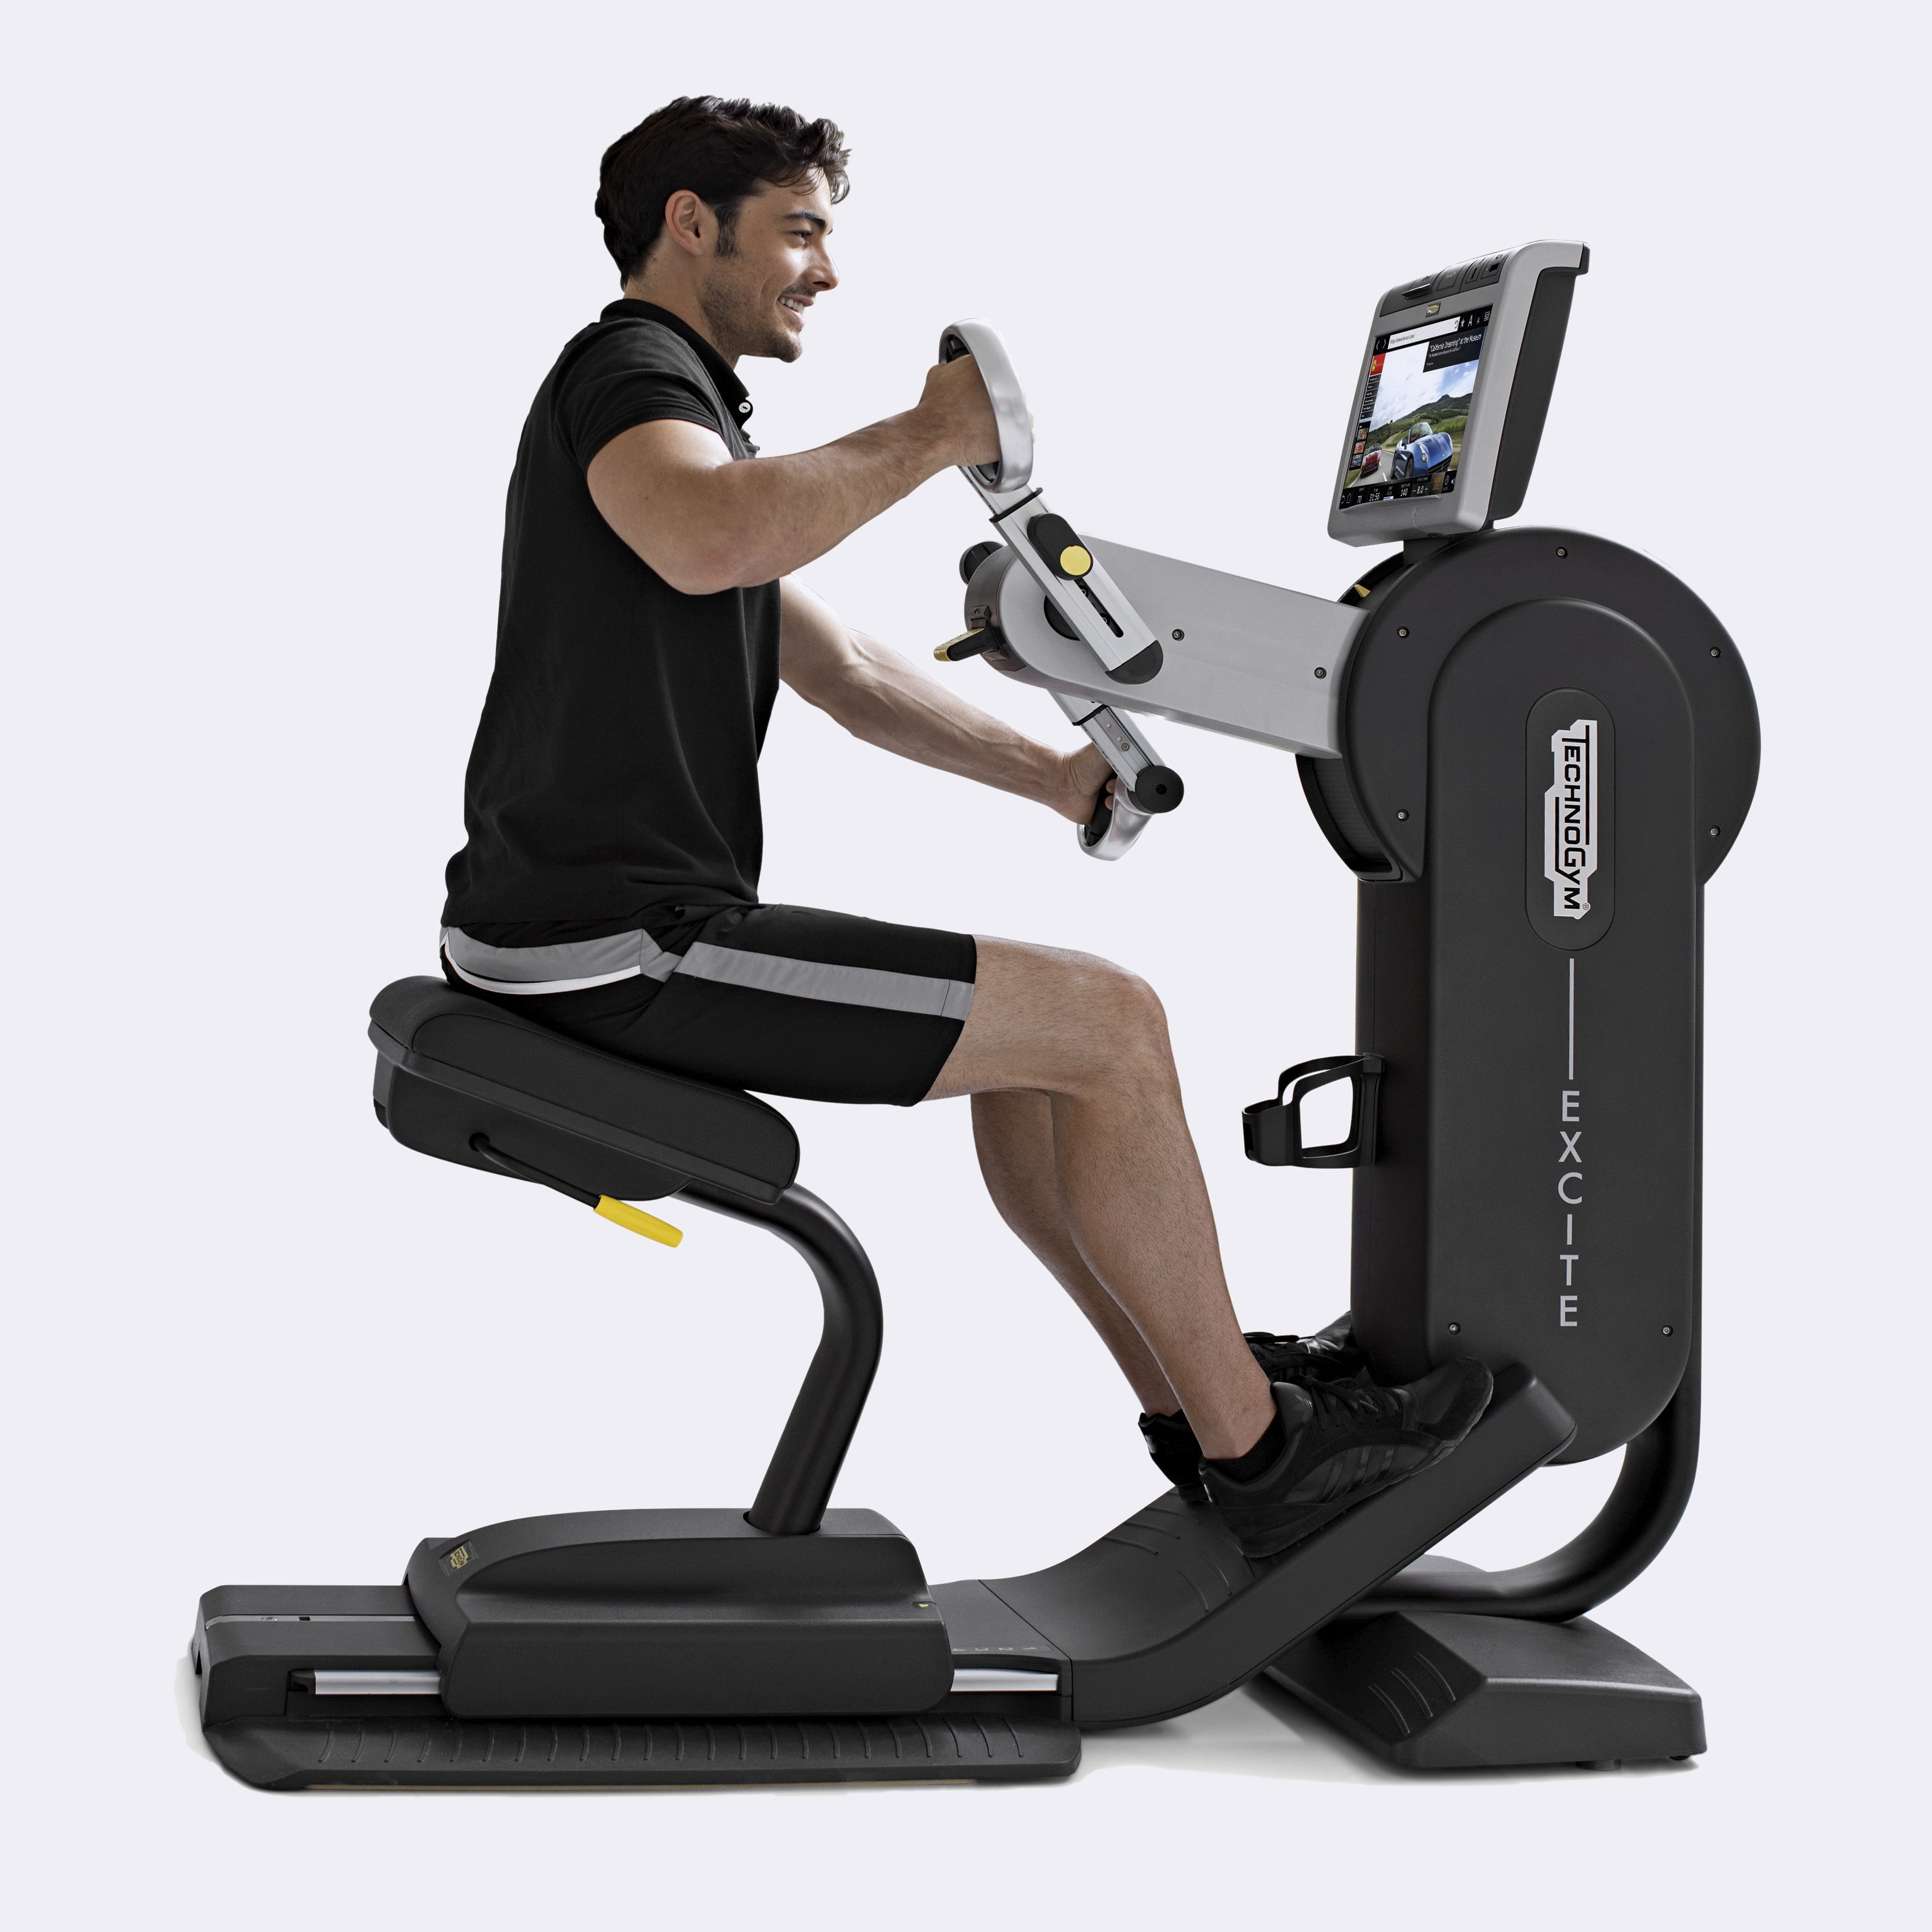 excite torso upper body rotation machine technogym. Black Bedroom Furniture Sets. Home Design Ideas